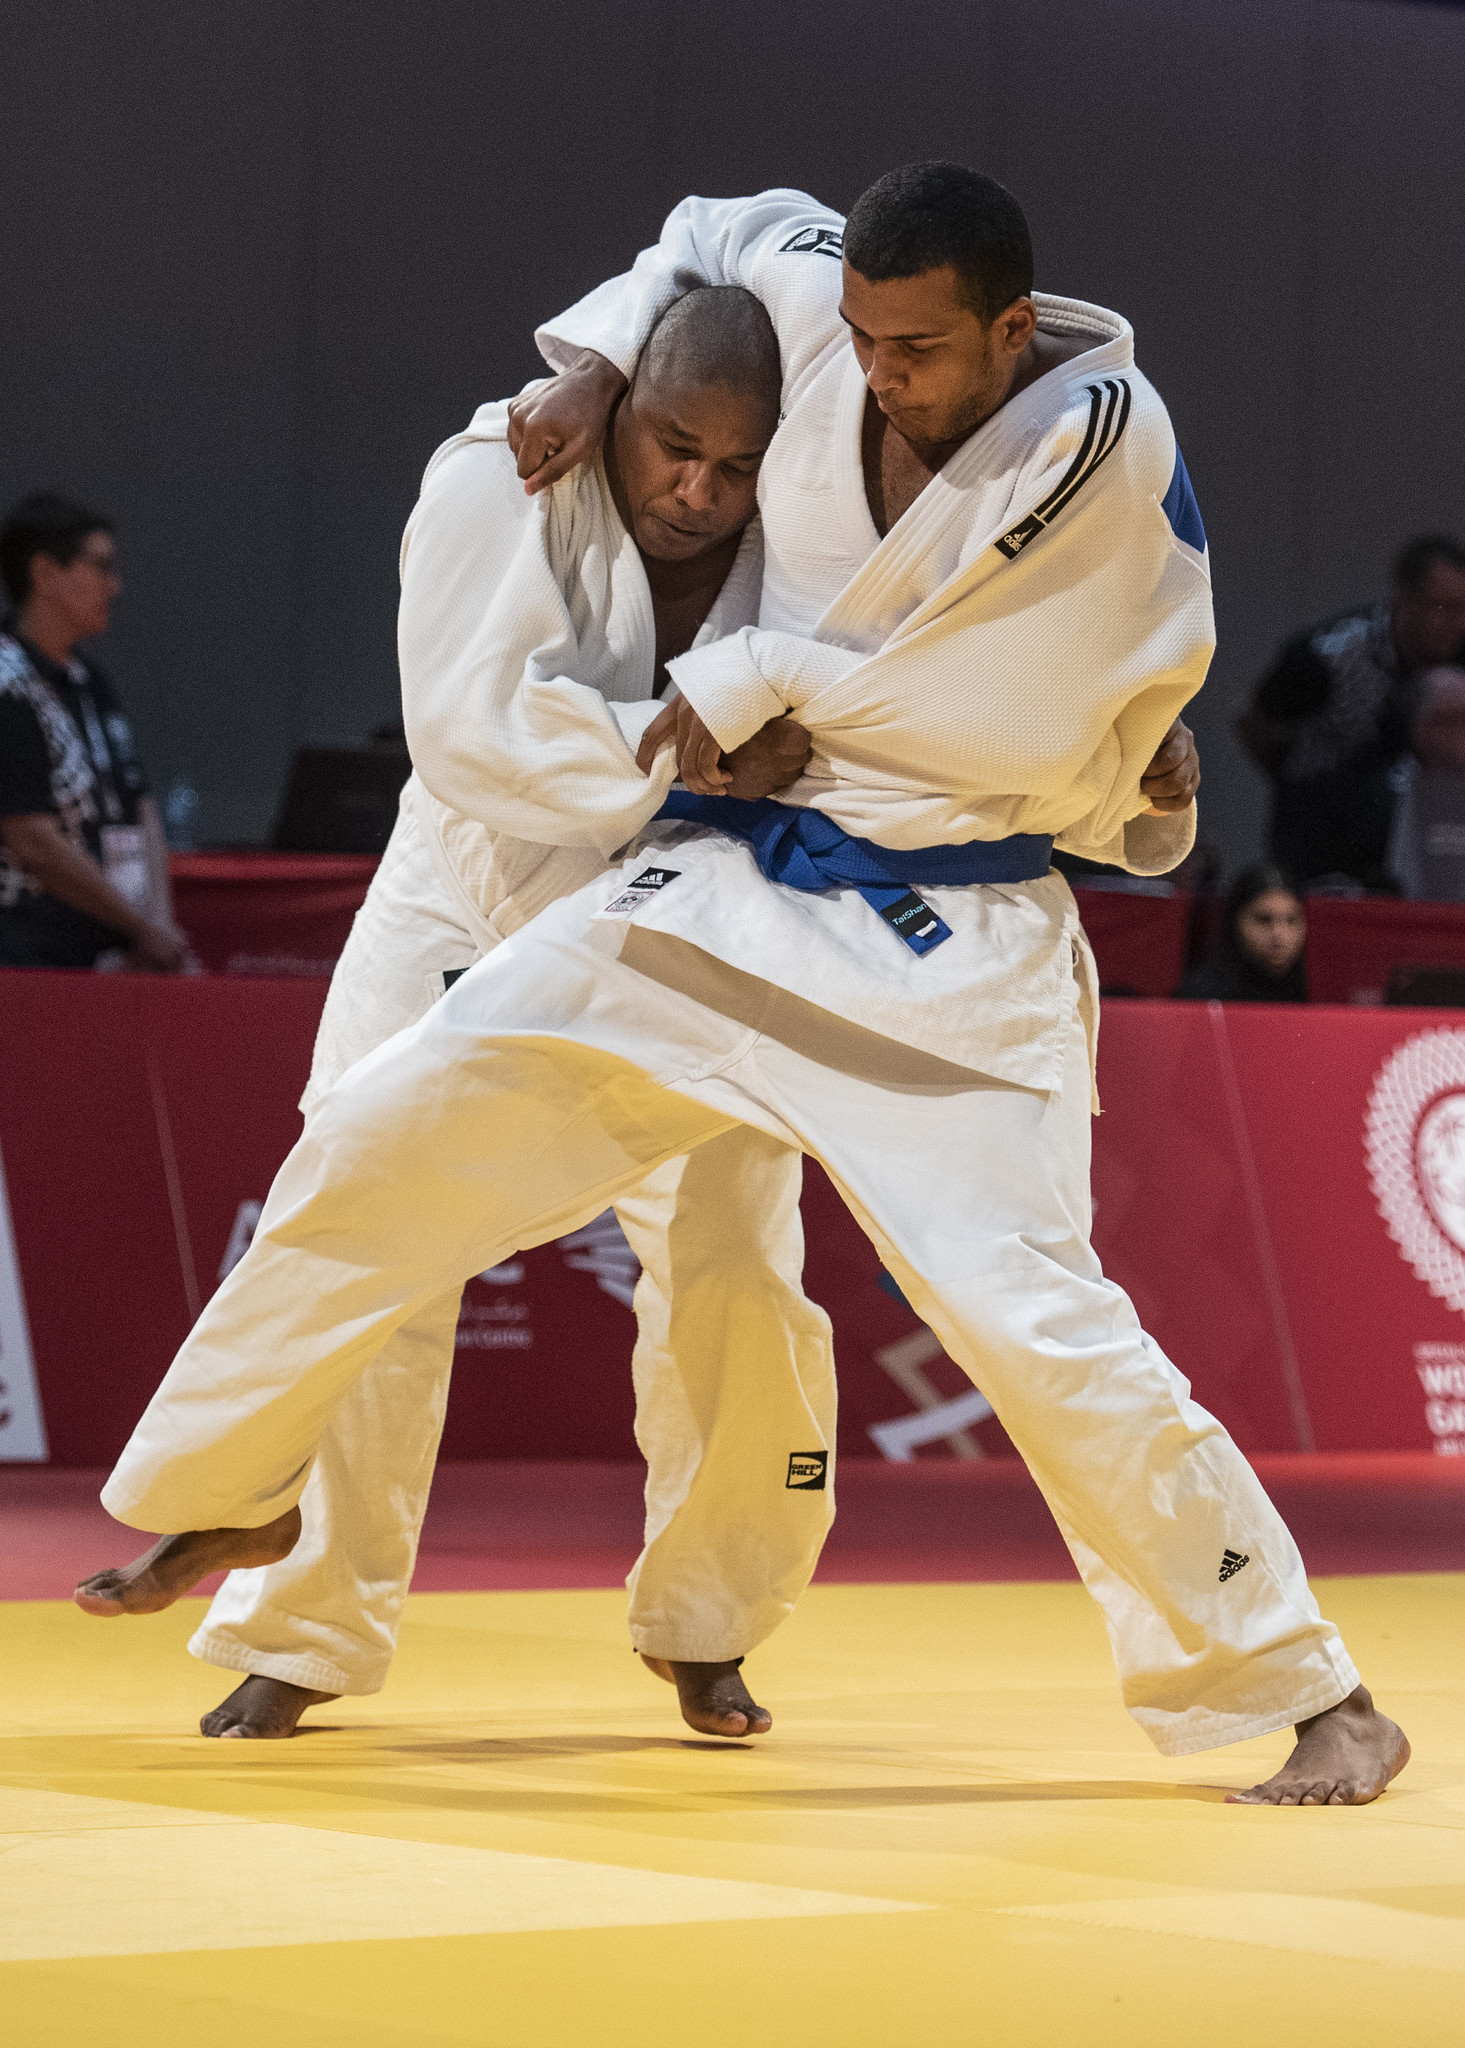 Judo, Special Olympics World Summer Games Abu Dhabi 2019